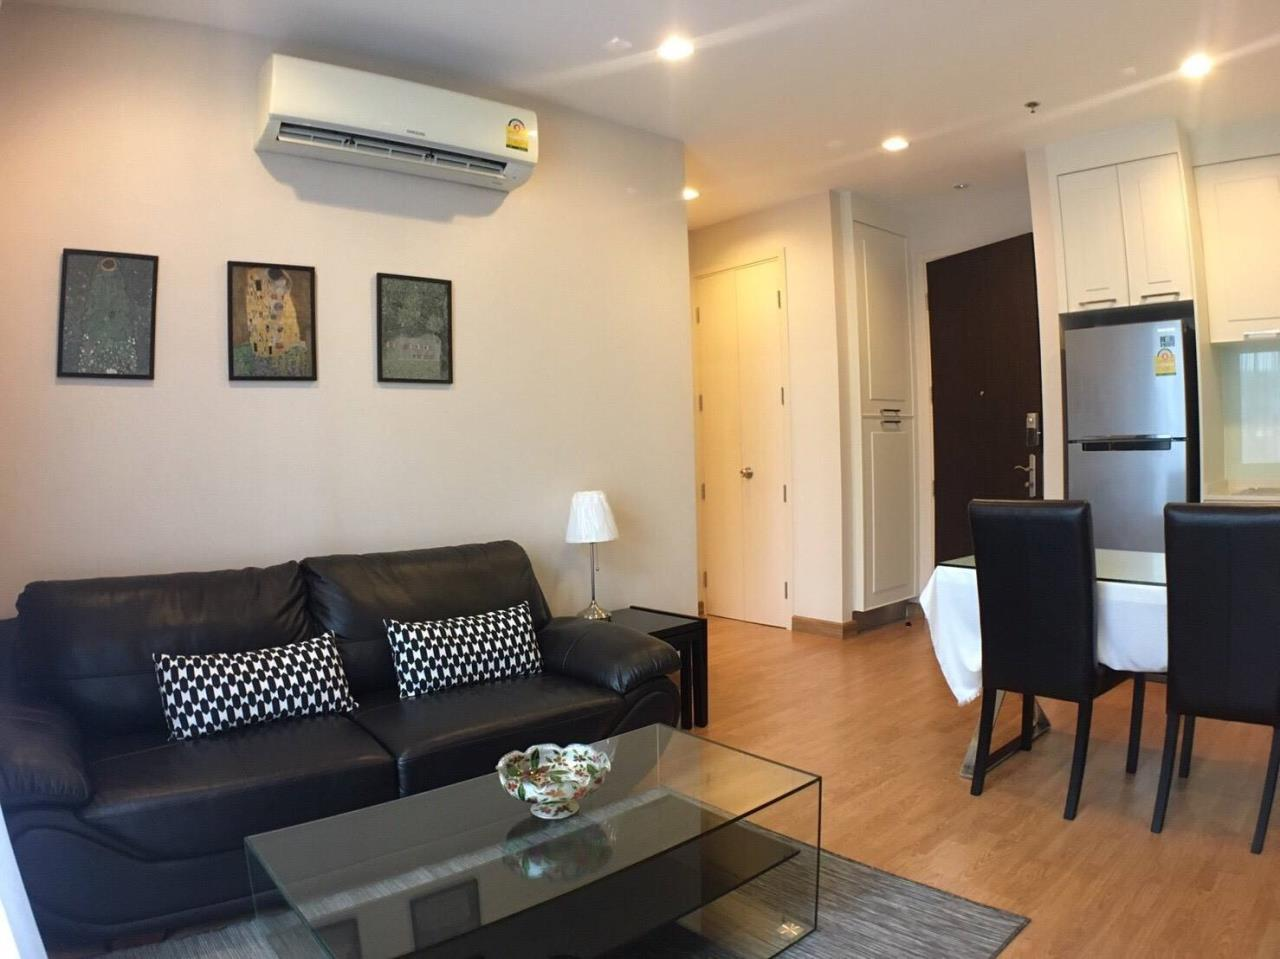 SALA ESTATE Agency's Q HOUSE SUKHUMVIT 79 – BTS ON NUT, 2 Bedrooms 2 Bathrooms, Fully Furnished, City View 2